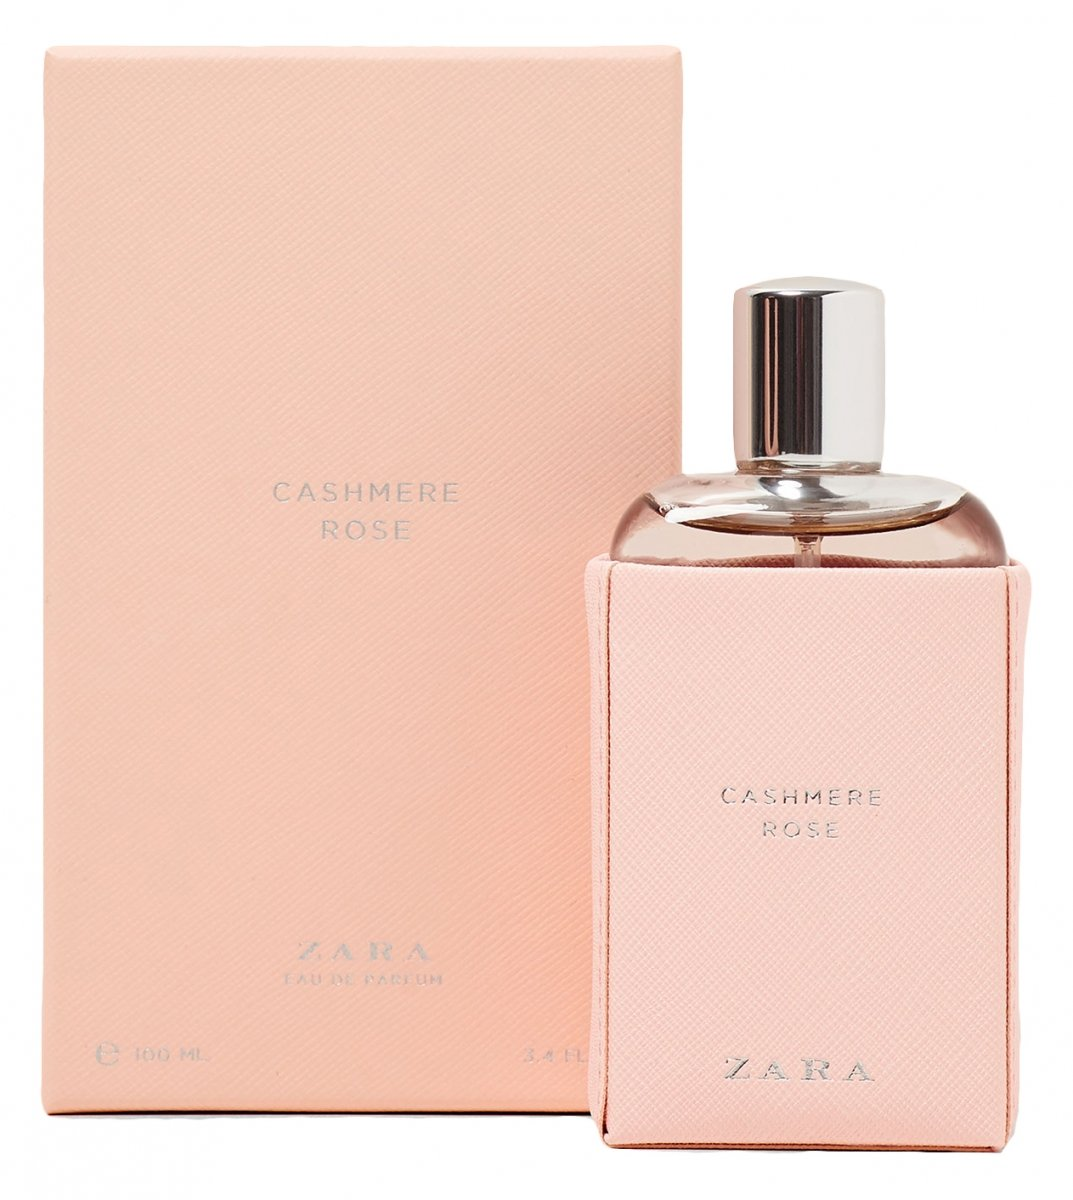 Zara Cashmere Rose Reviews And Rating